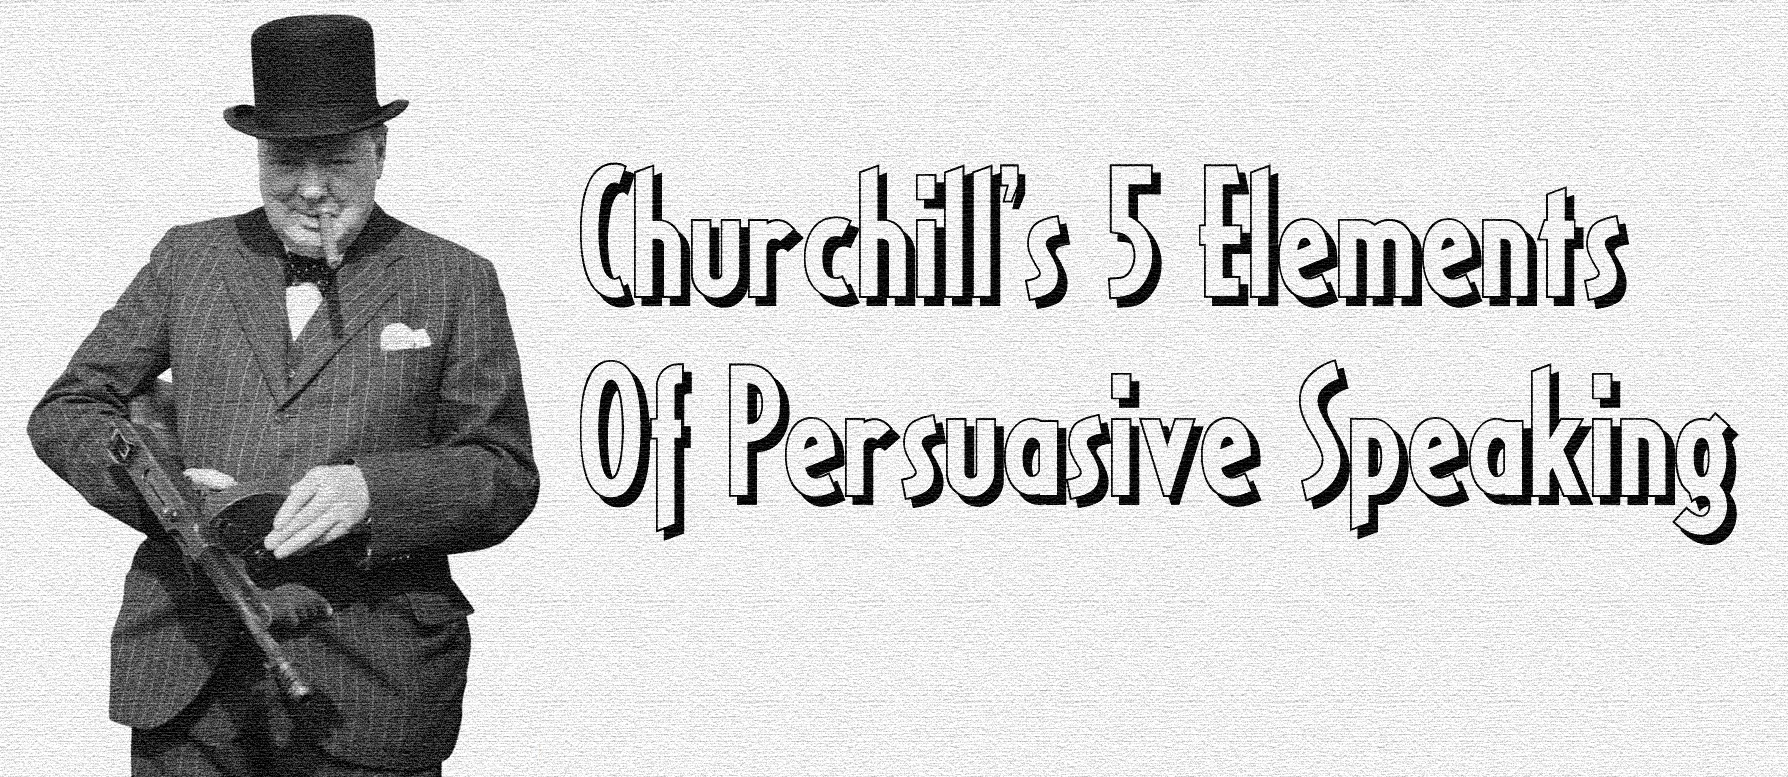 Churchill's 5 Elements Of Persuasive Speaking